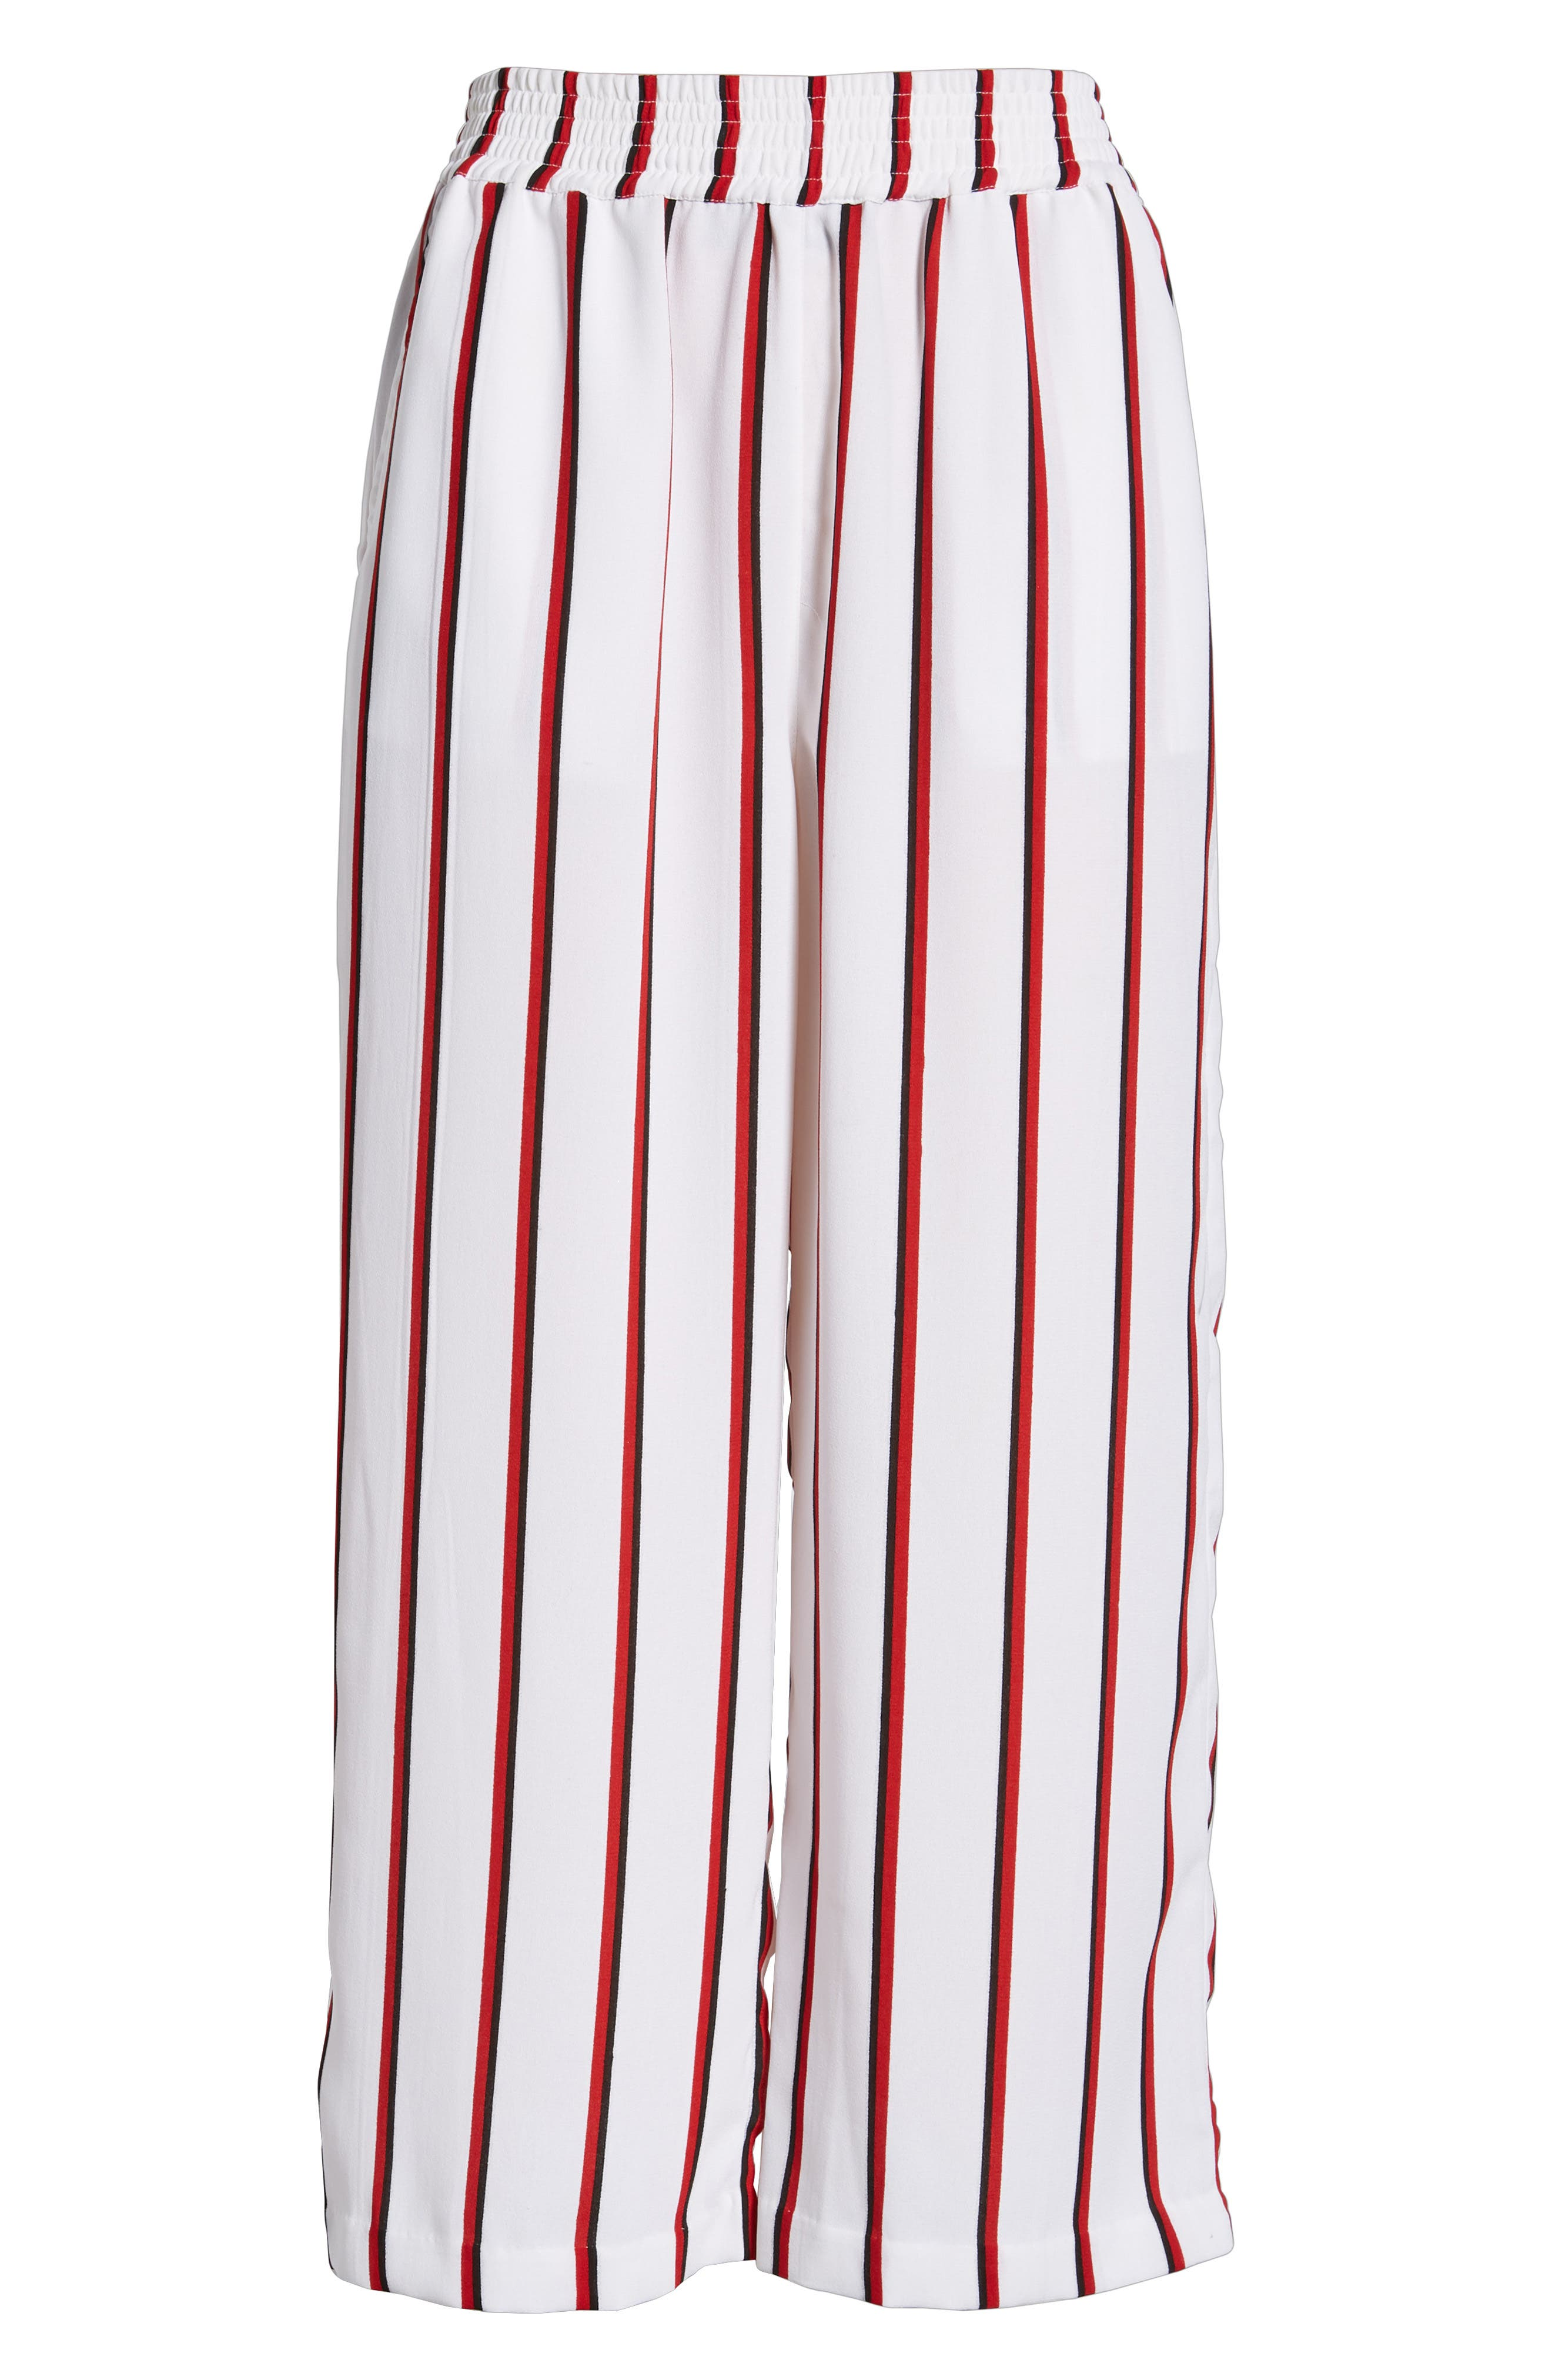 Counting Moons Stripe Culottes,                             Alternate thumbnail 6, color,                             Chili Red